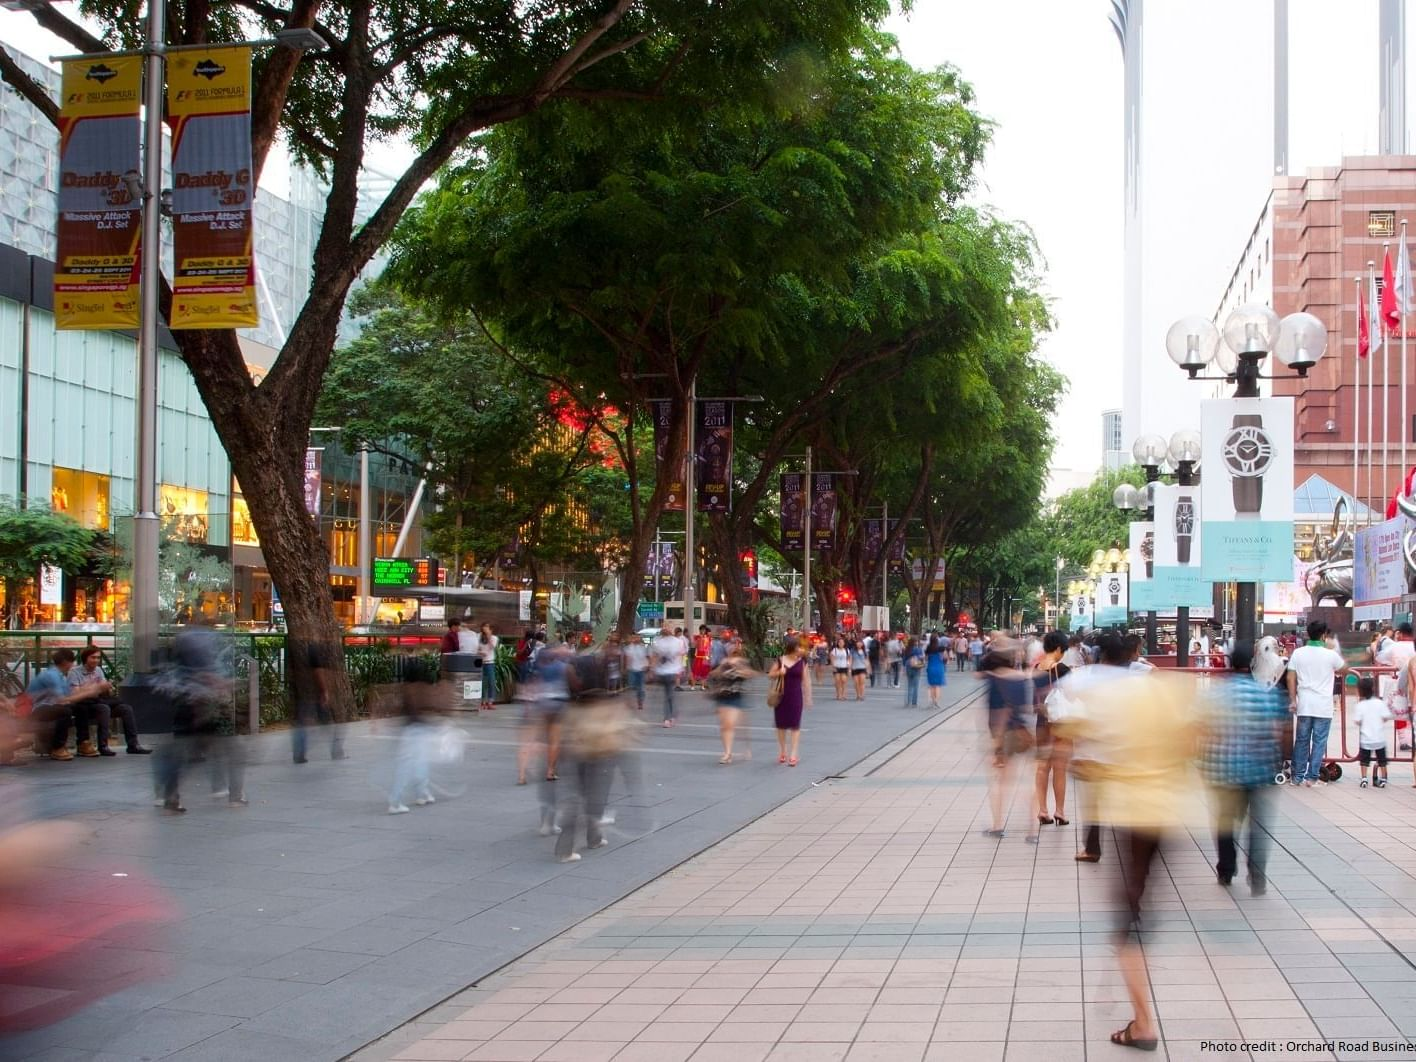 People walking on the streets in Singapore